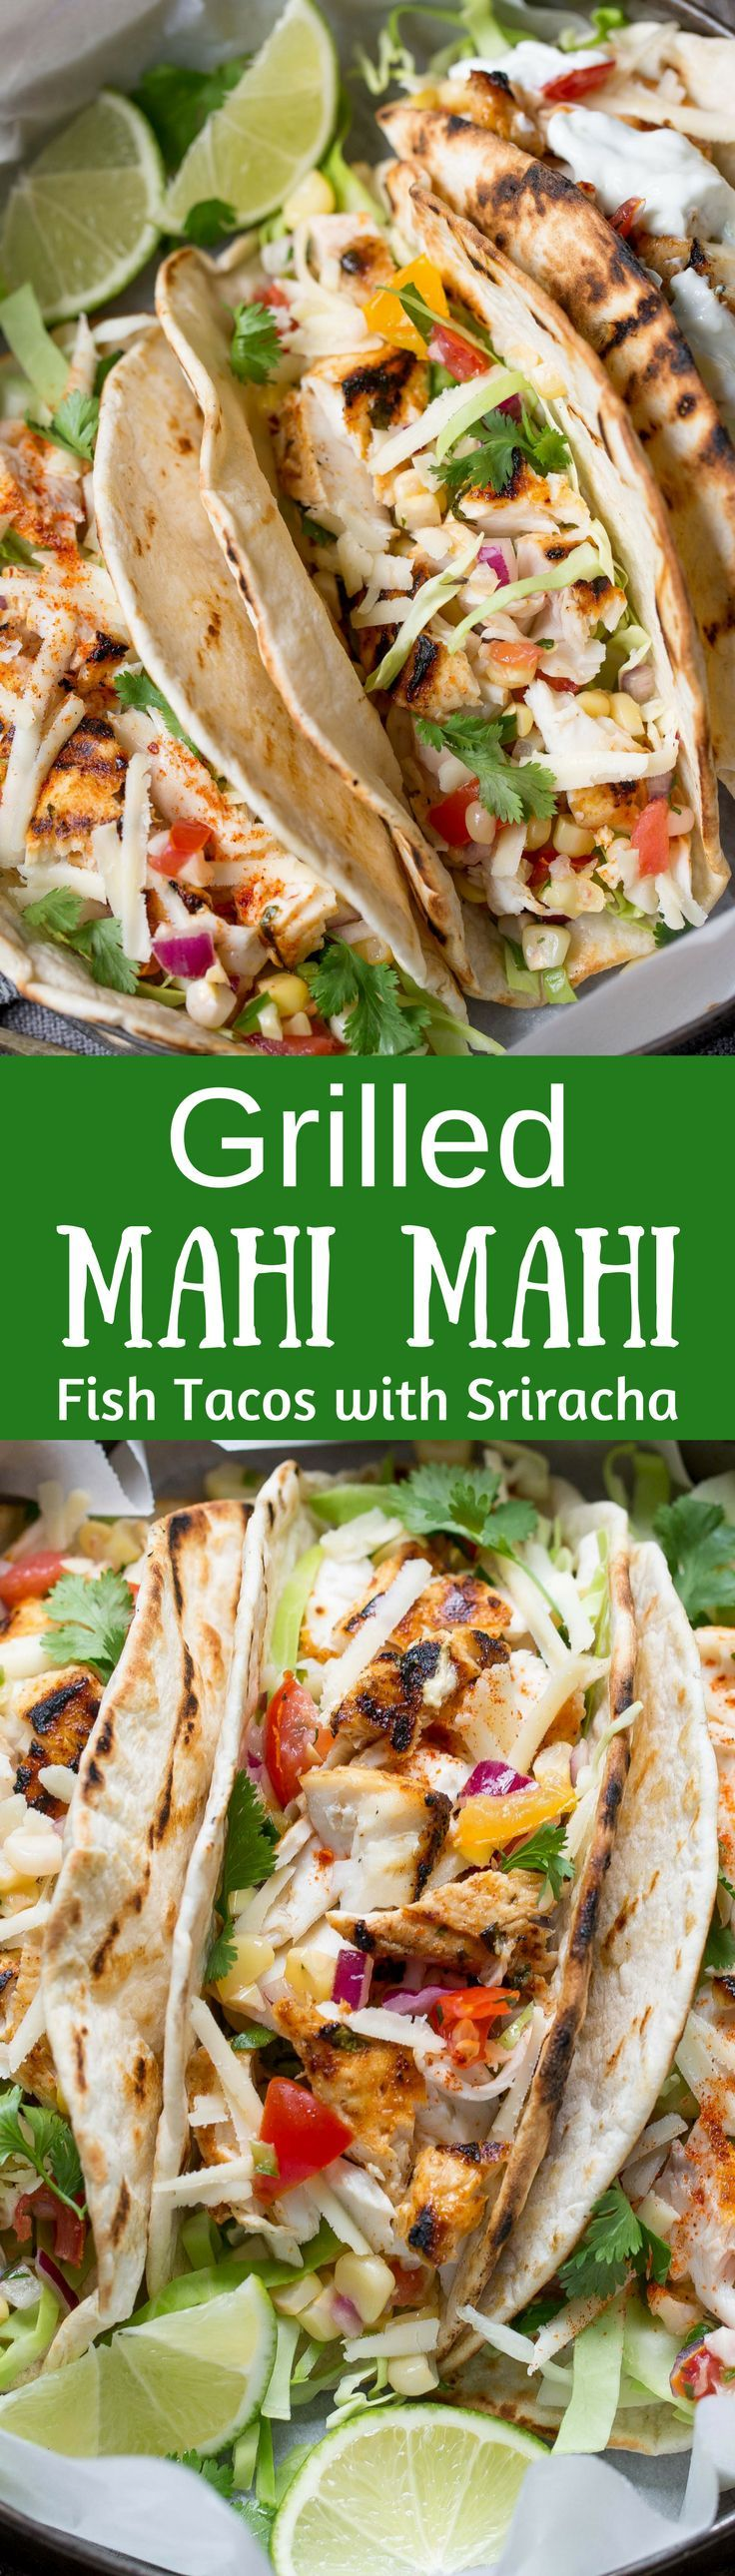 Sriracha Grilled Mahi Mahi Fish Tacos with Sweet Corn Salsa ~ from www.savingdessert.com